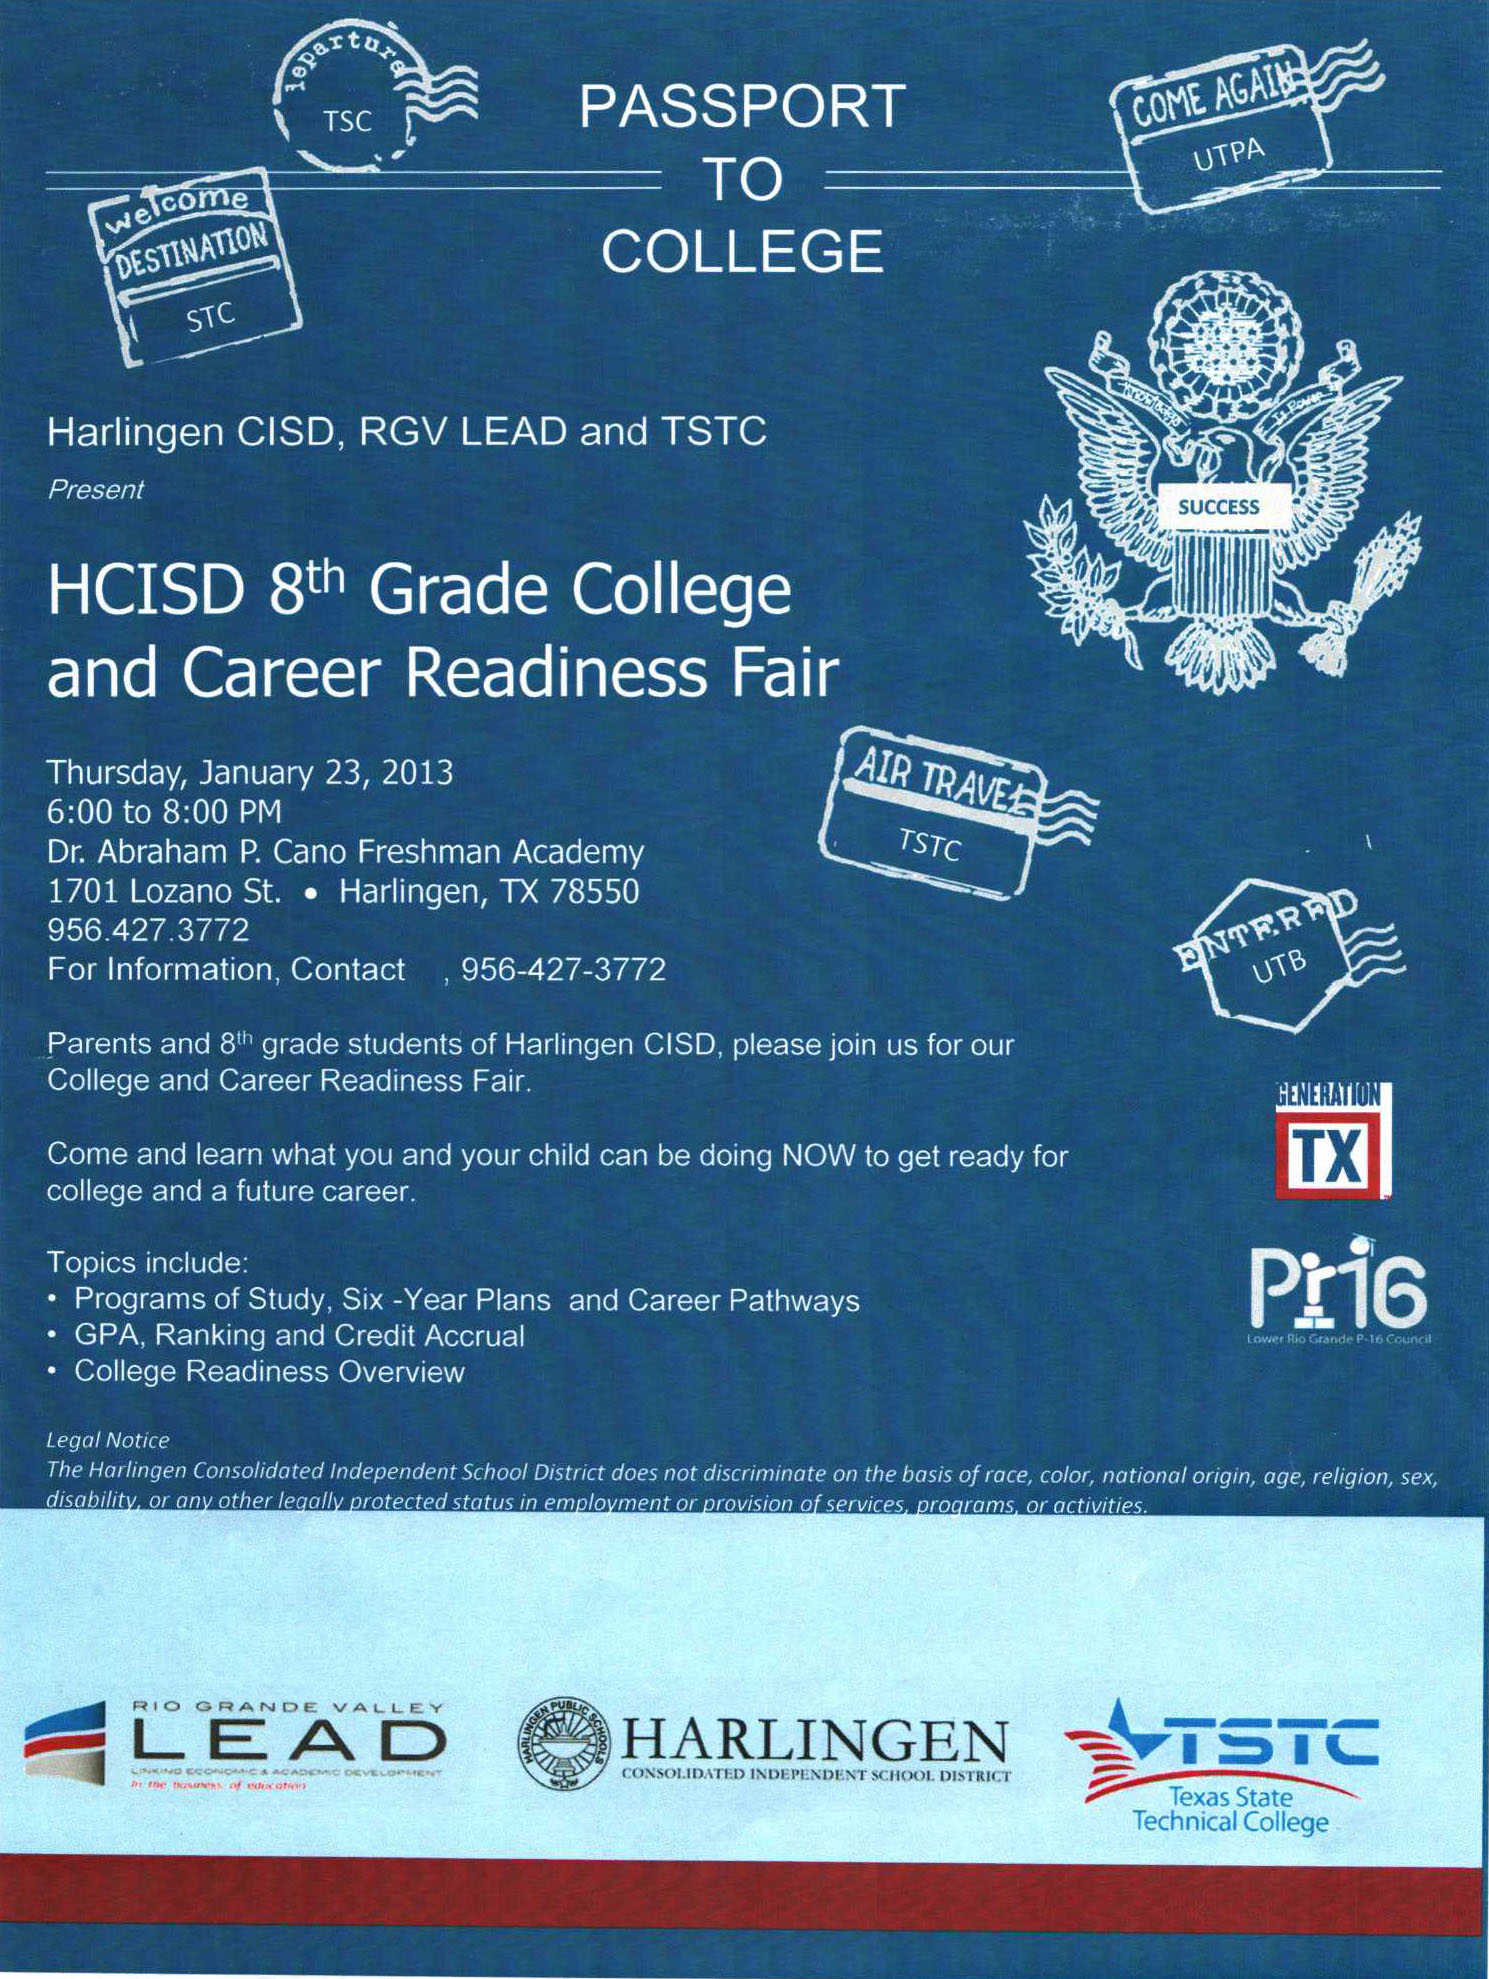 HCISD invites eighth grade community to Passport to College event